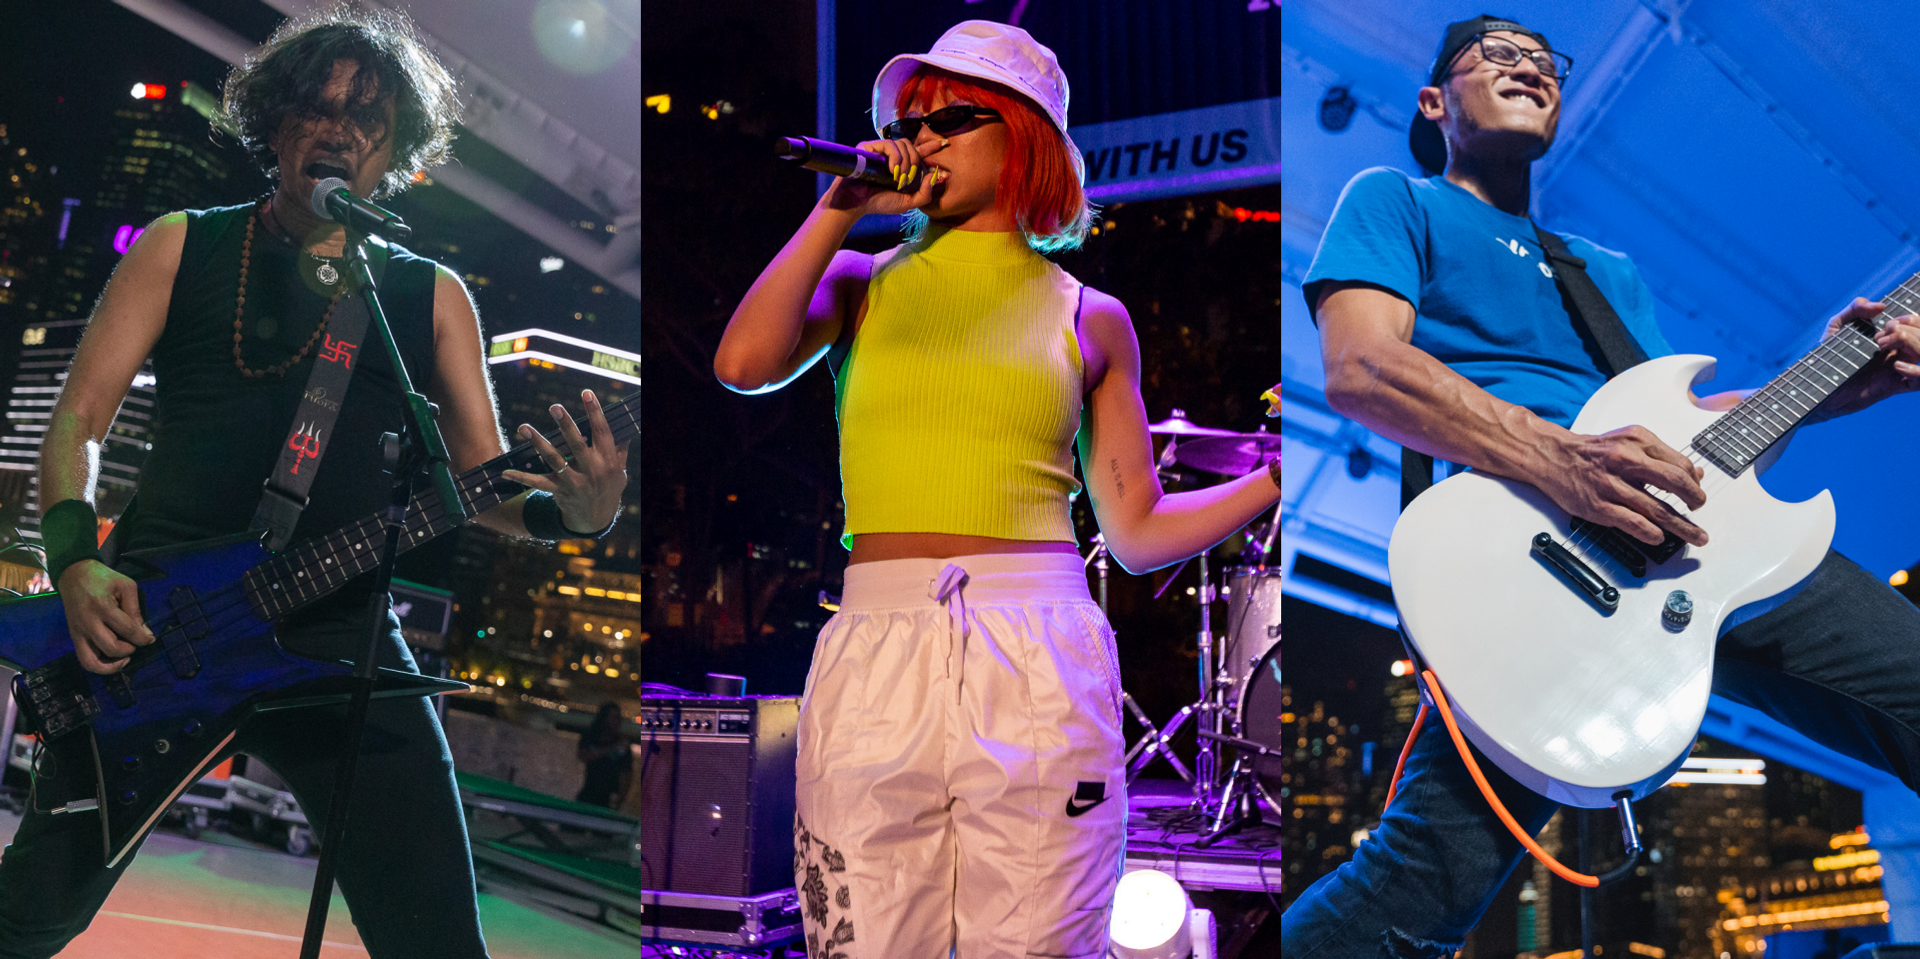 Baybeats 2019 was an epic celebration of next-level music from Asia